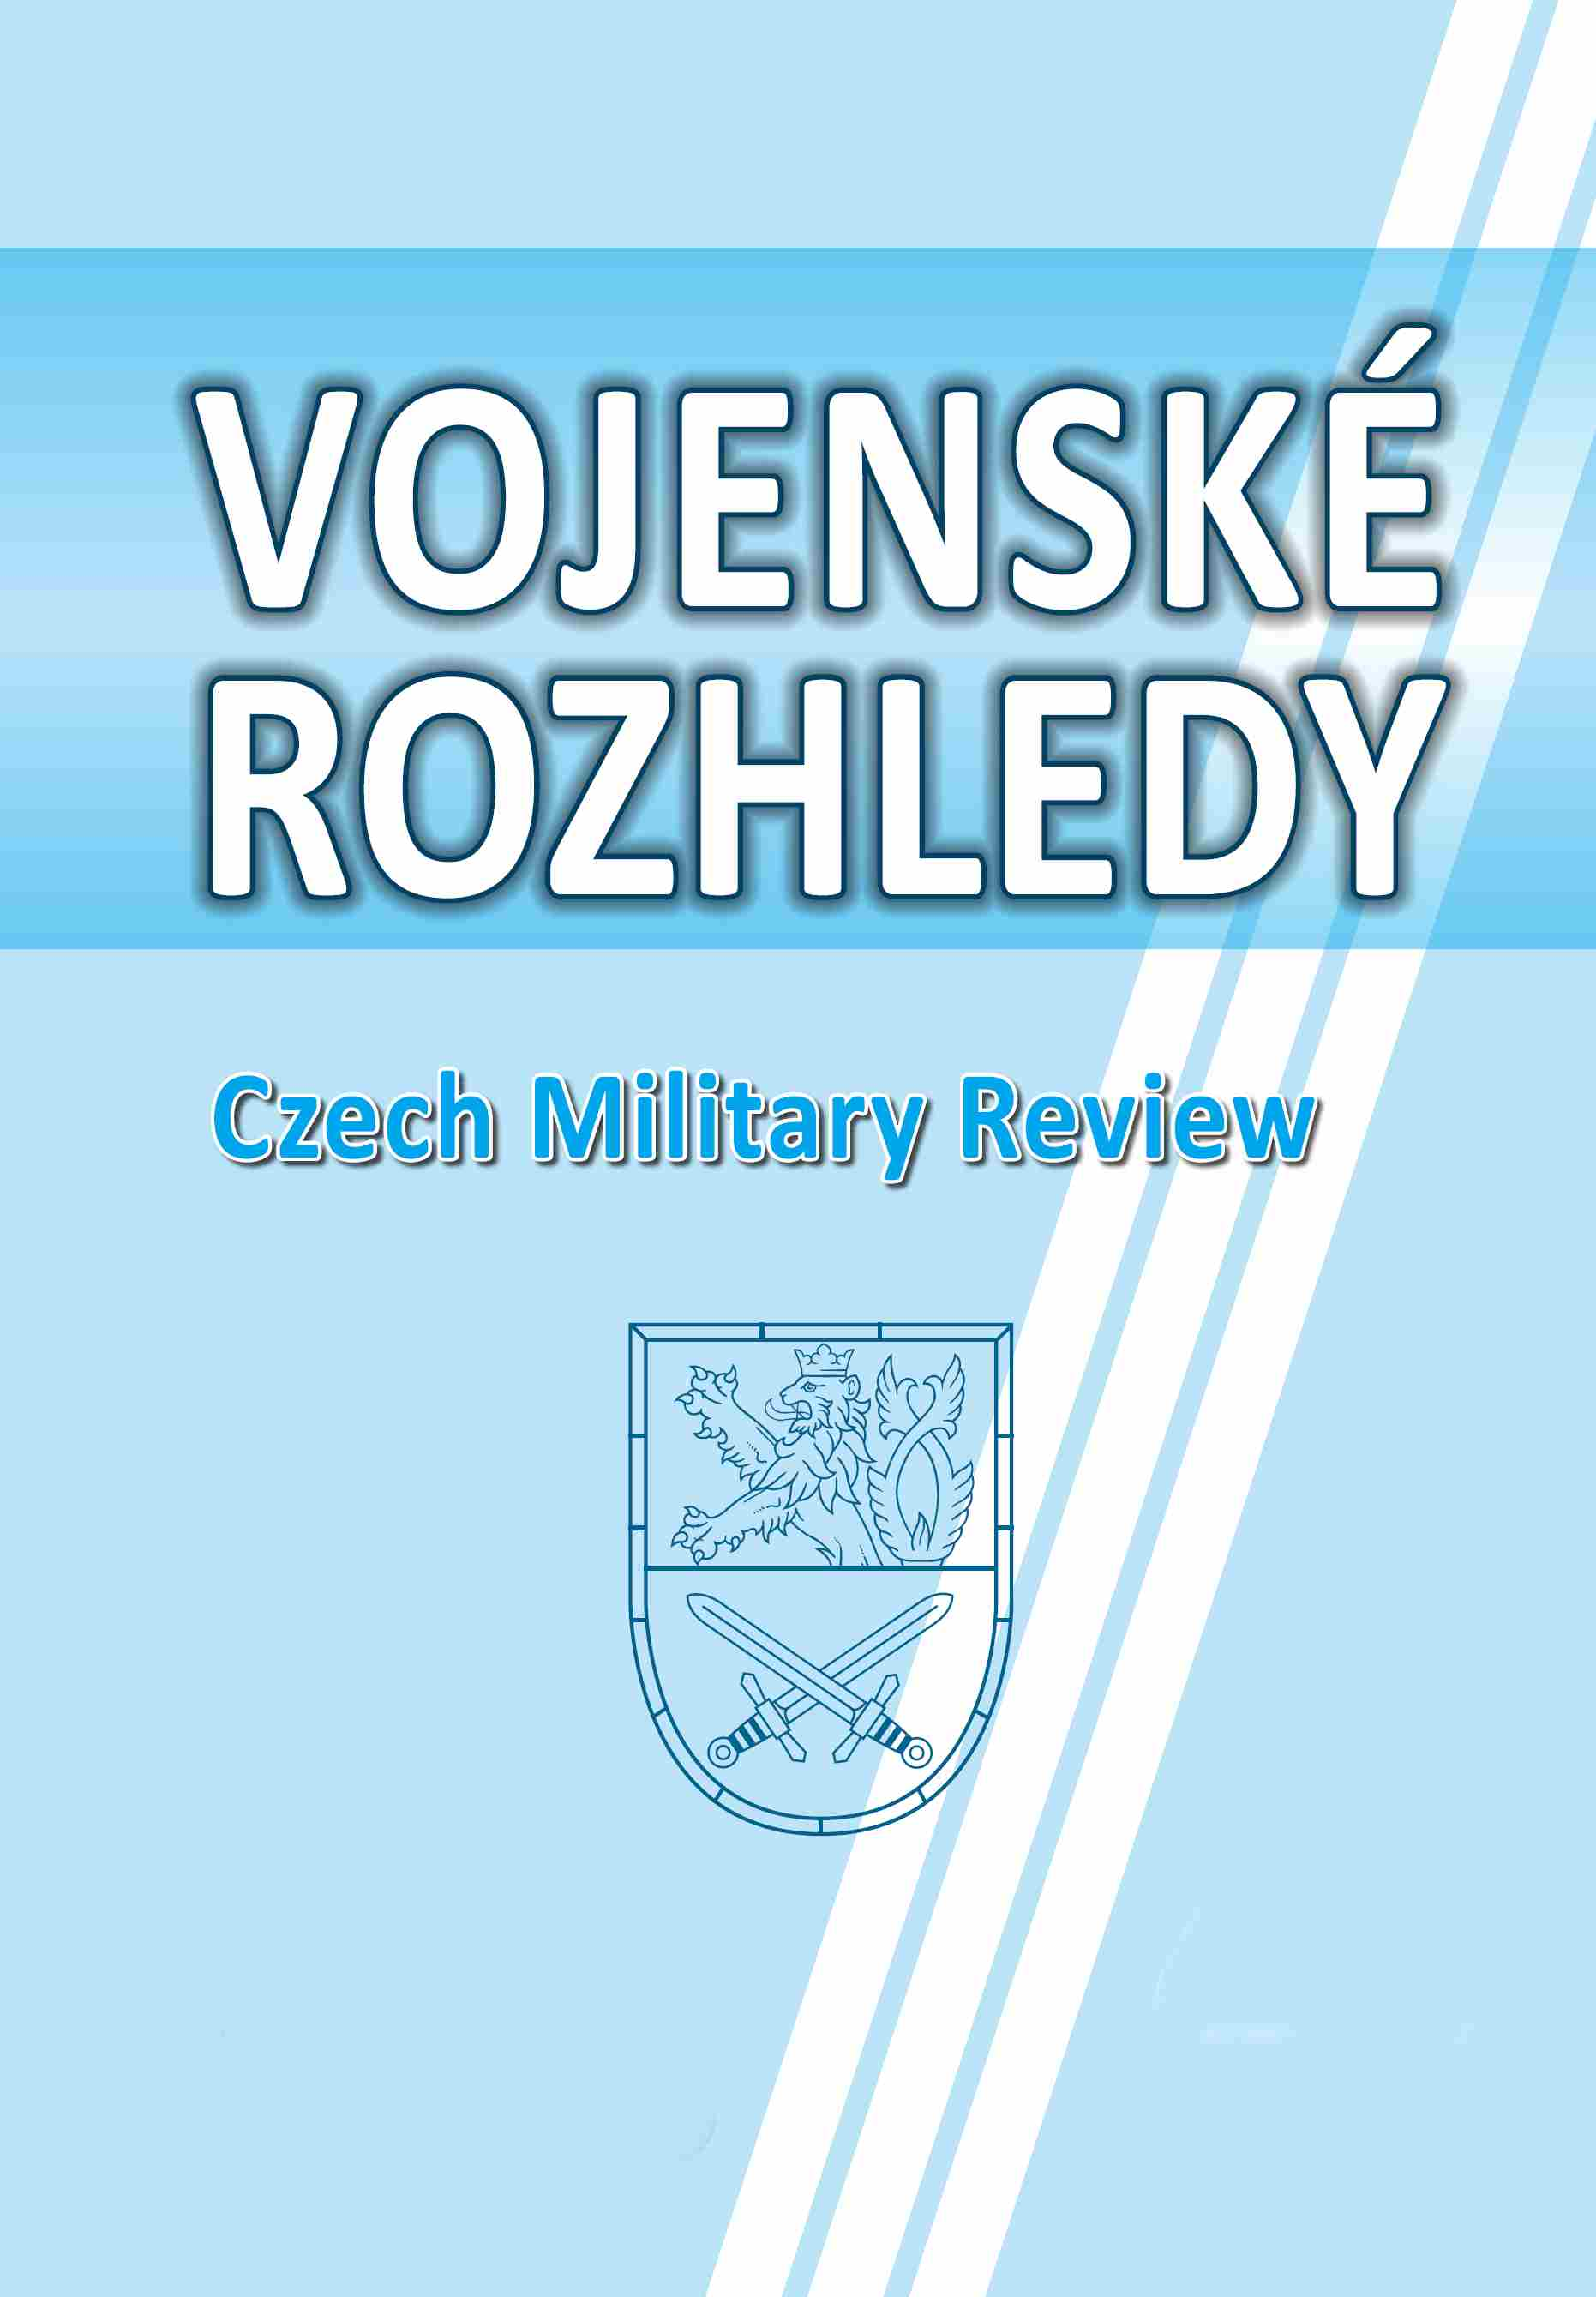 Czech Military Review Cover Image